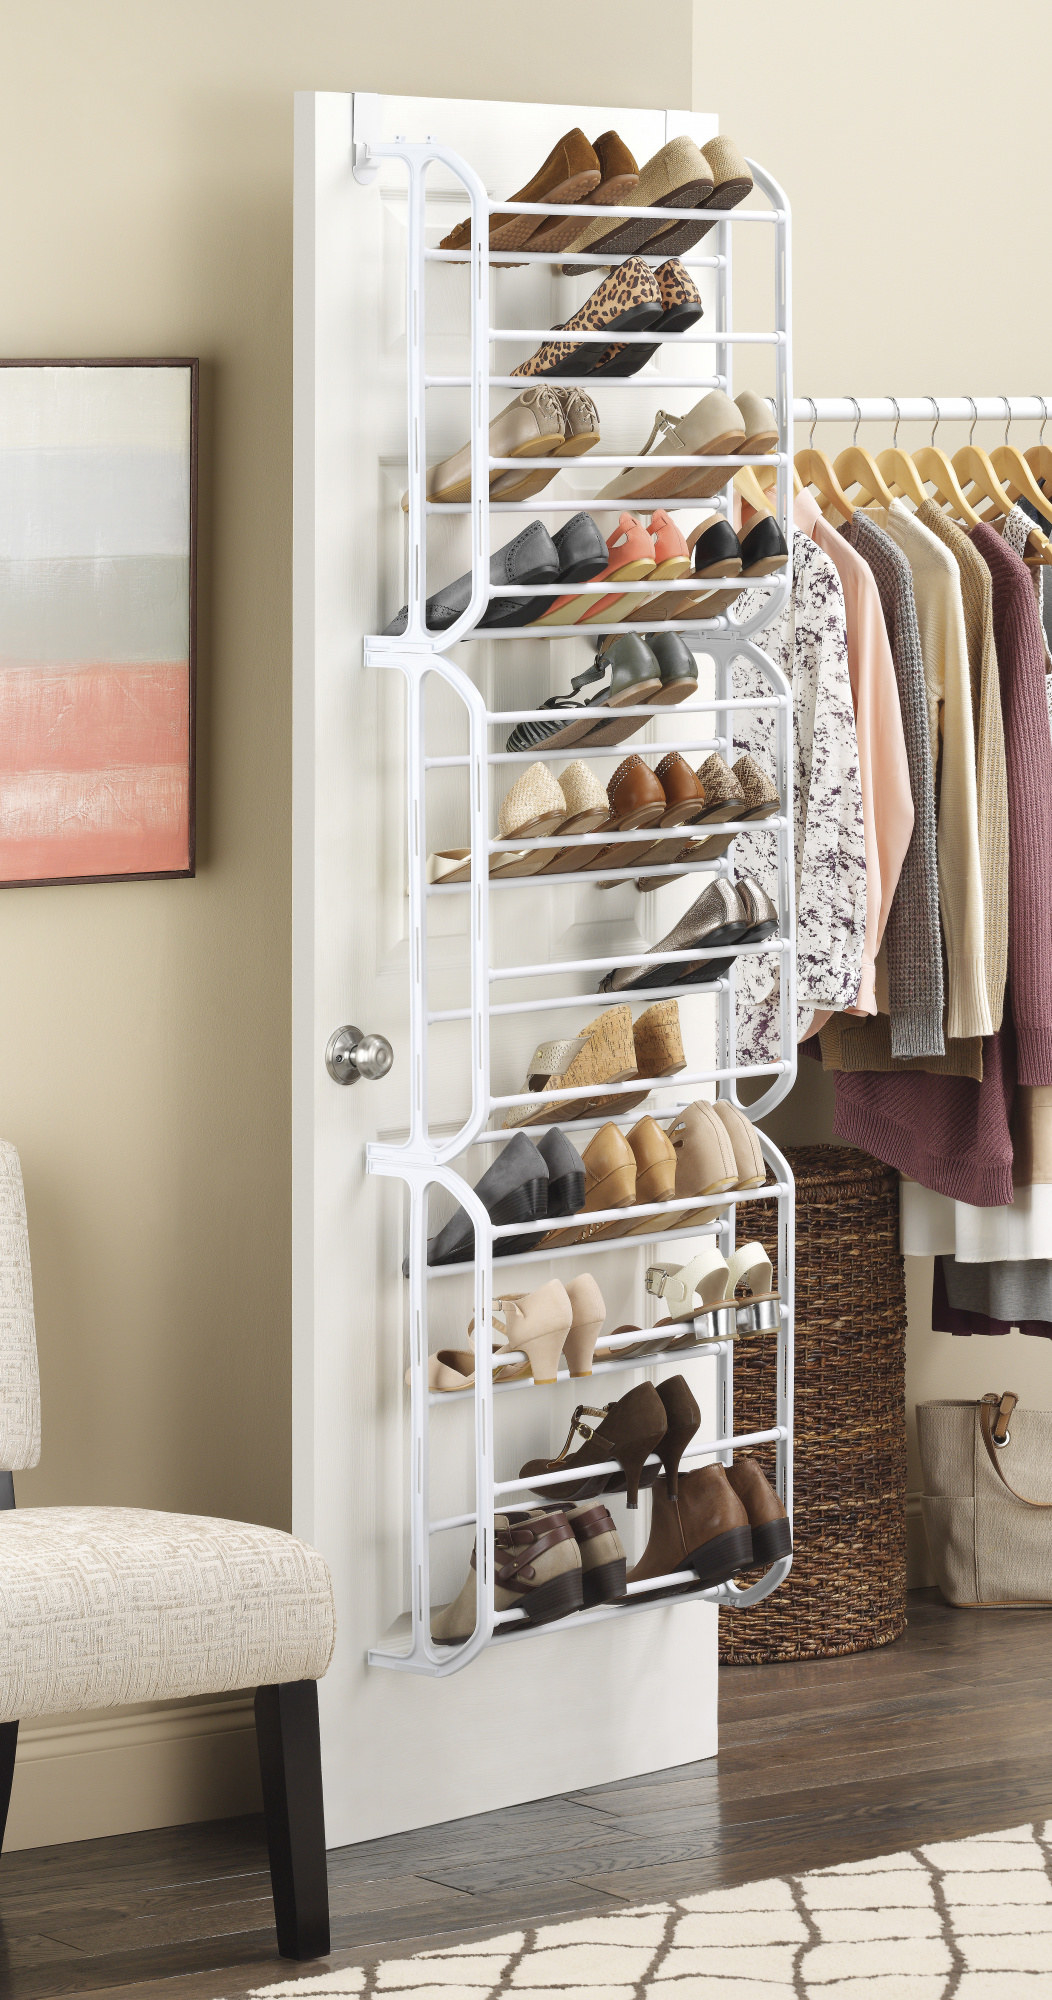 The rack in a neutral white finish, featuring wide hanging hooks and 12 shelves